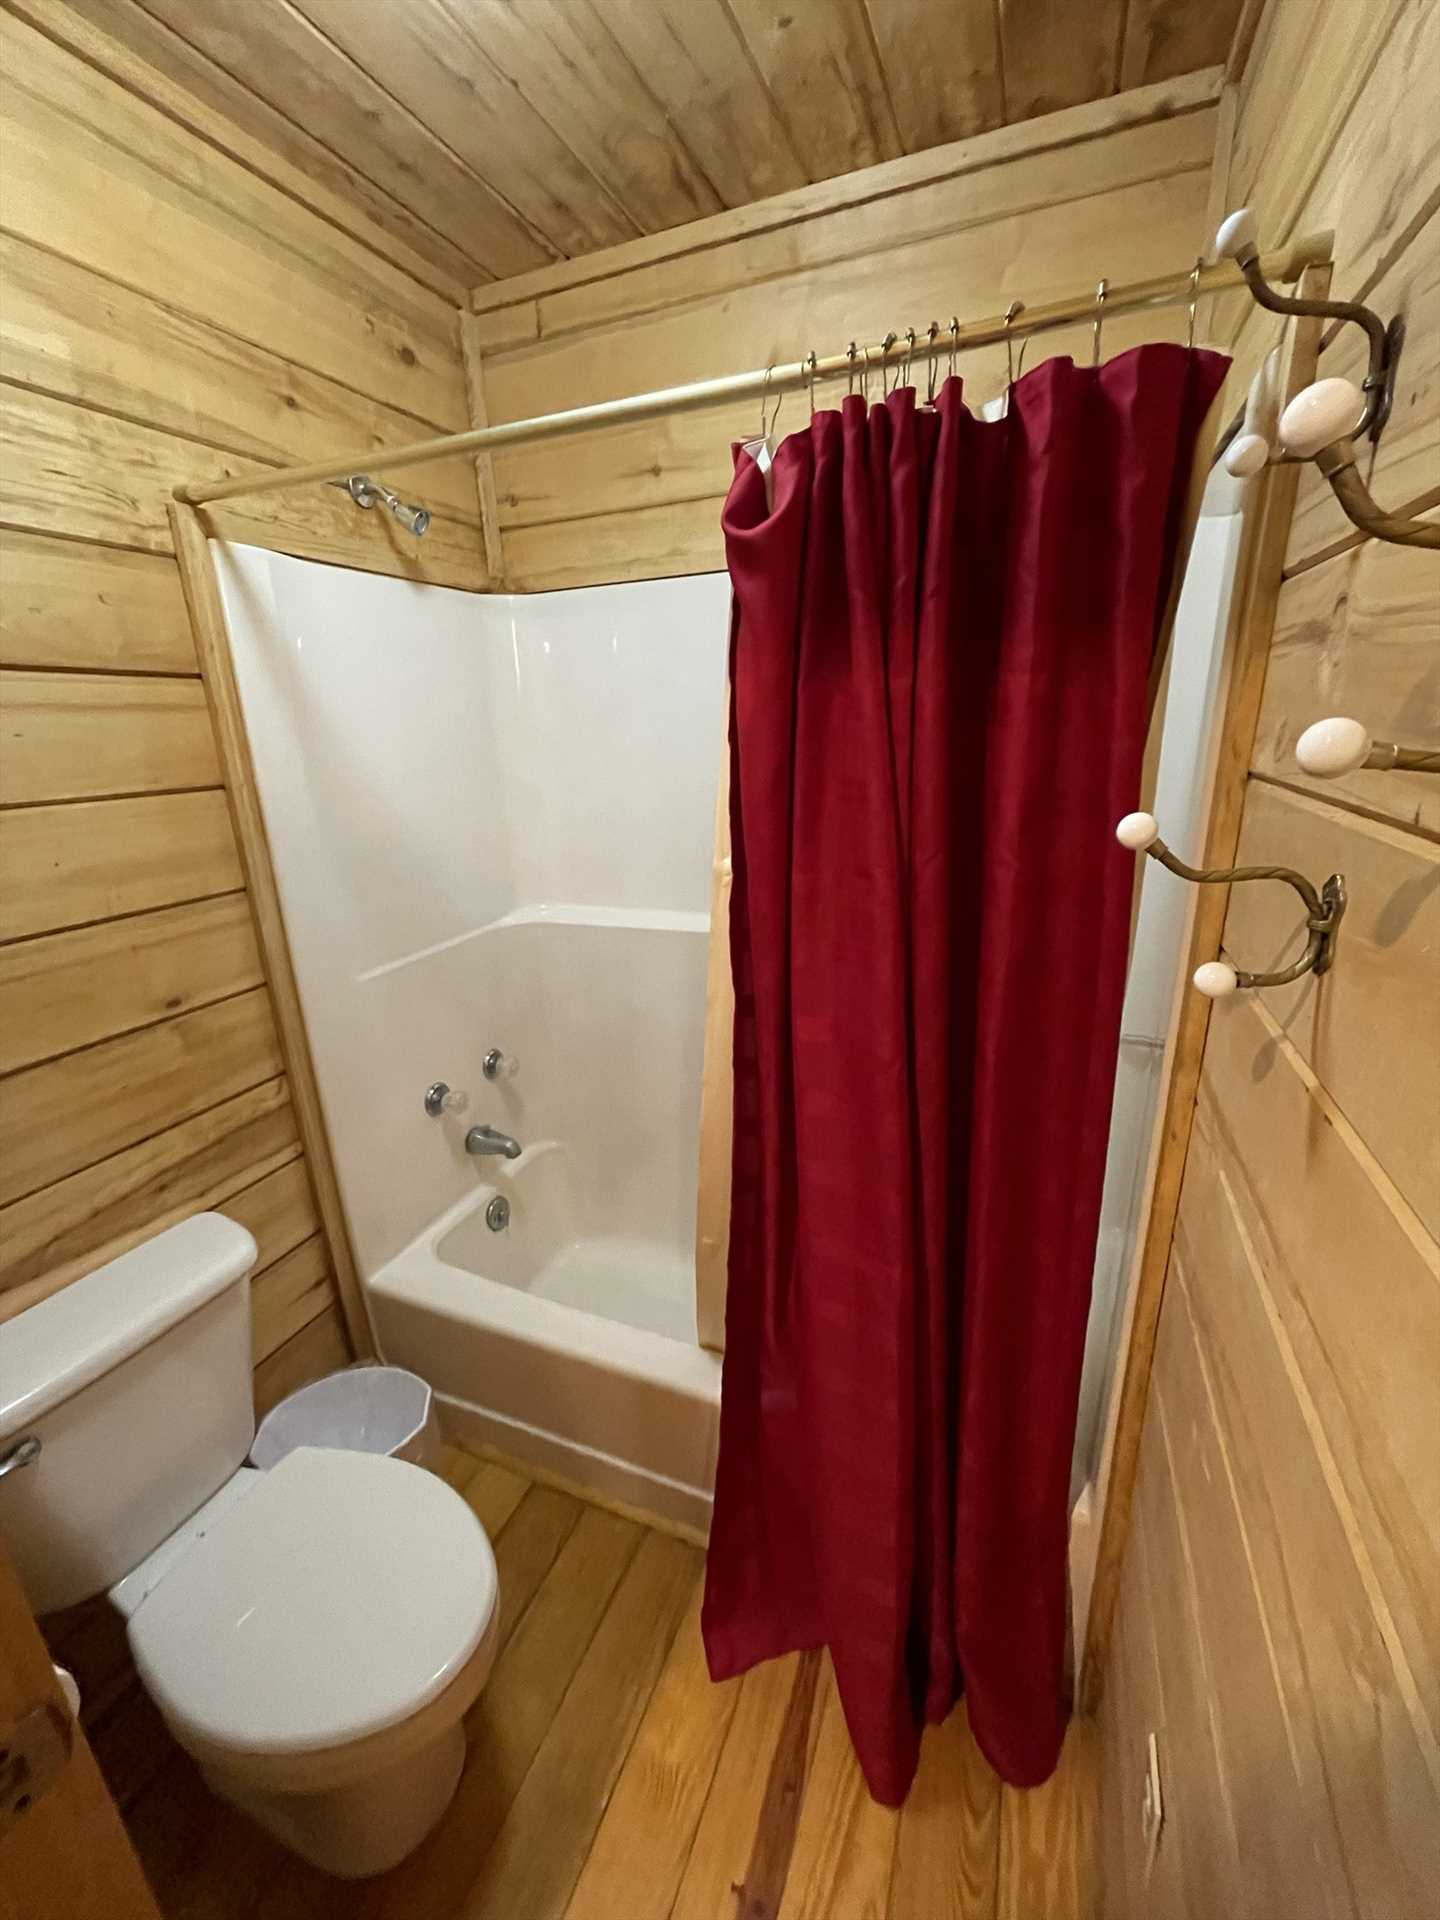 With the Lodge's two bathrooms for six guests, there'll be no standing in line! Both baths include a spotlessly-clean tub and shower combo.